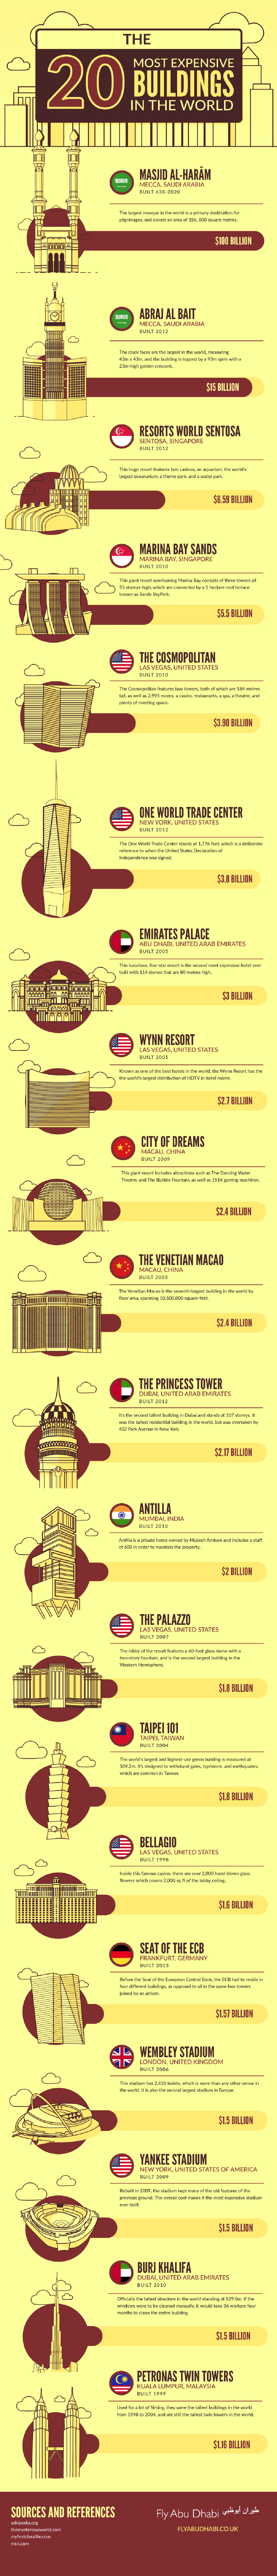 Most Expensive Buildings in the World - Architecture Infographic